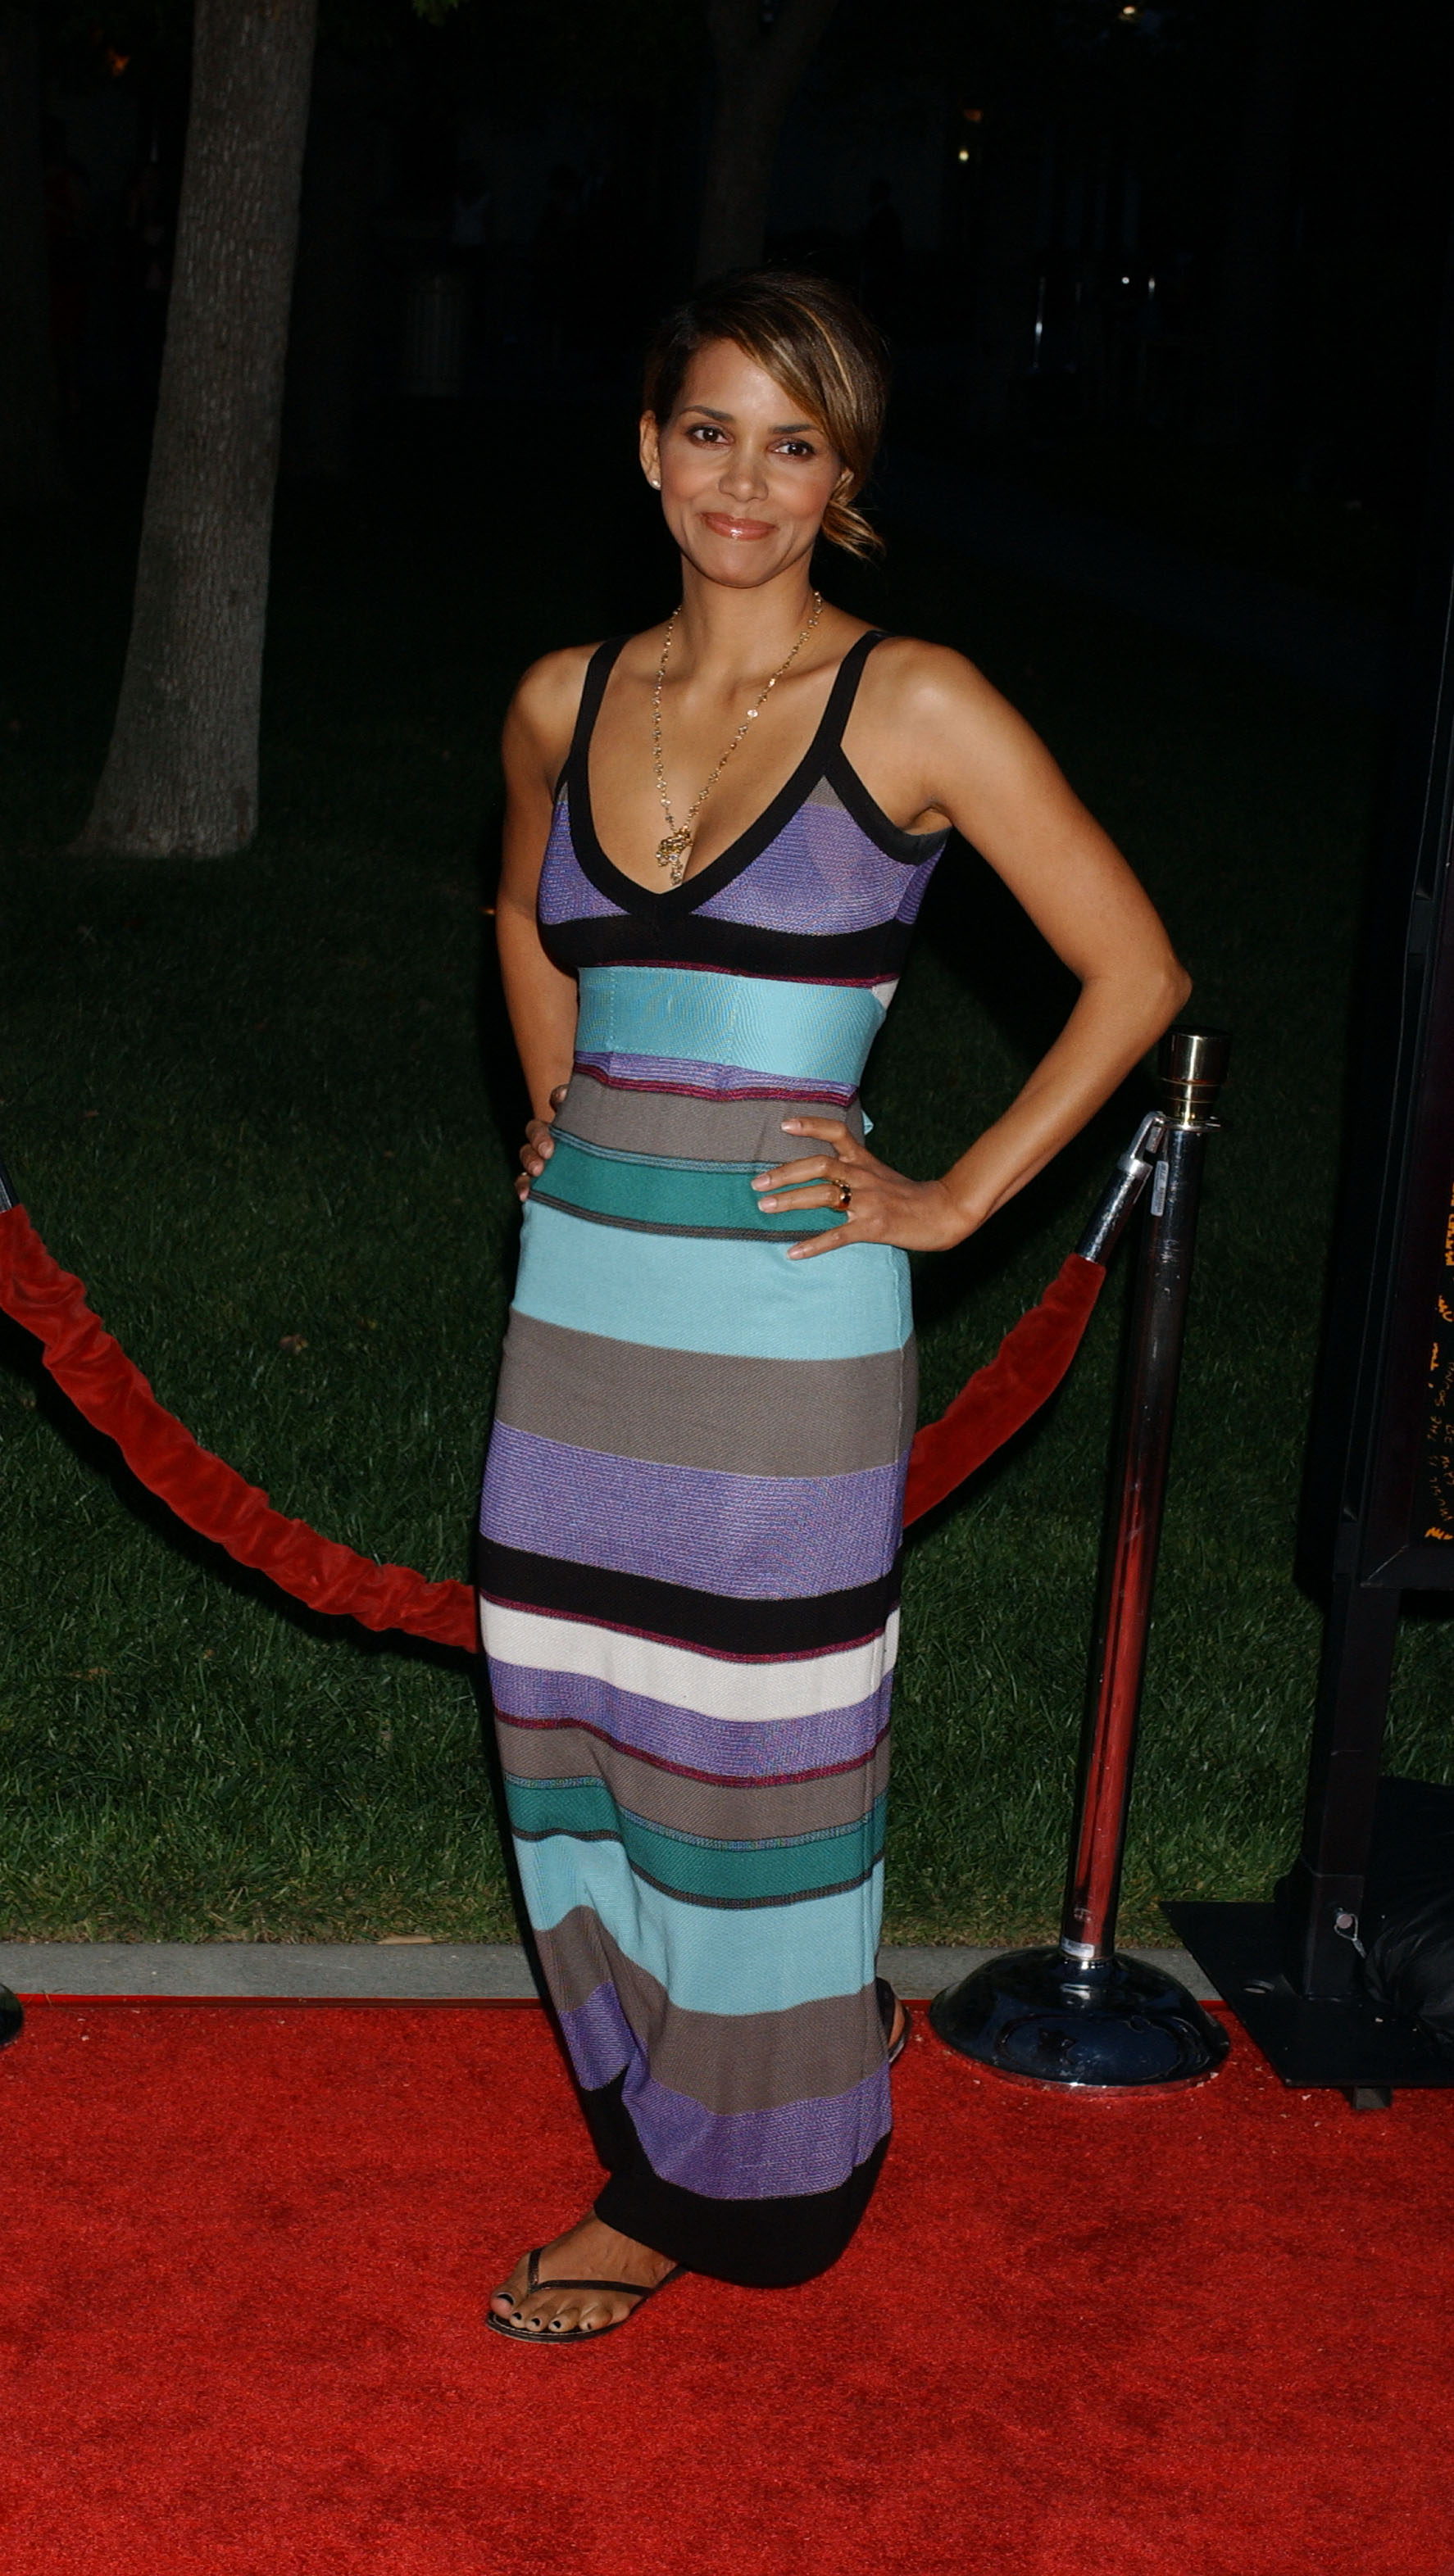 65669_Halle_Berry_The_Soloist_premiere_in_Los_Angeles_56_122_1165lo.jpg